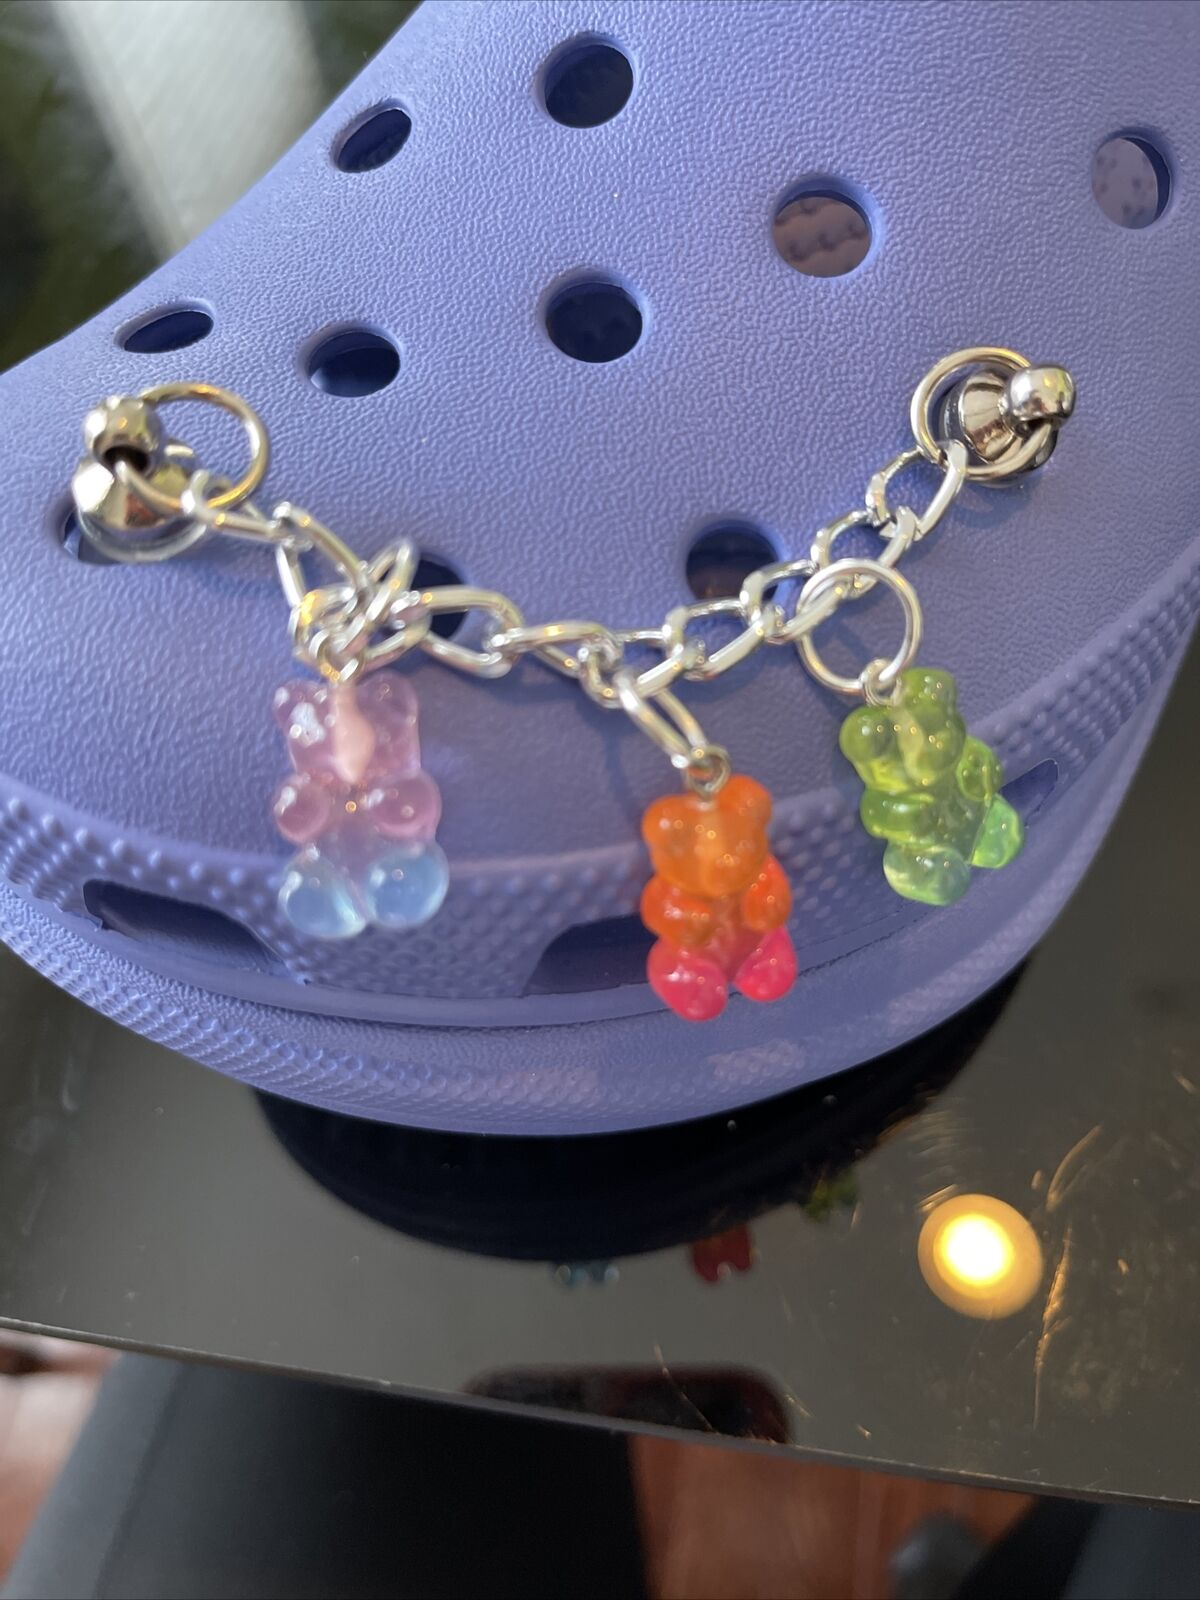 crocs inspired charms - Silver Chain Link With Gummy Bears - Colors Vary